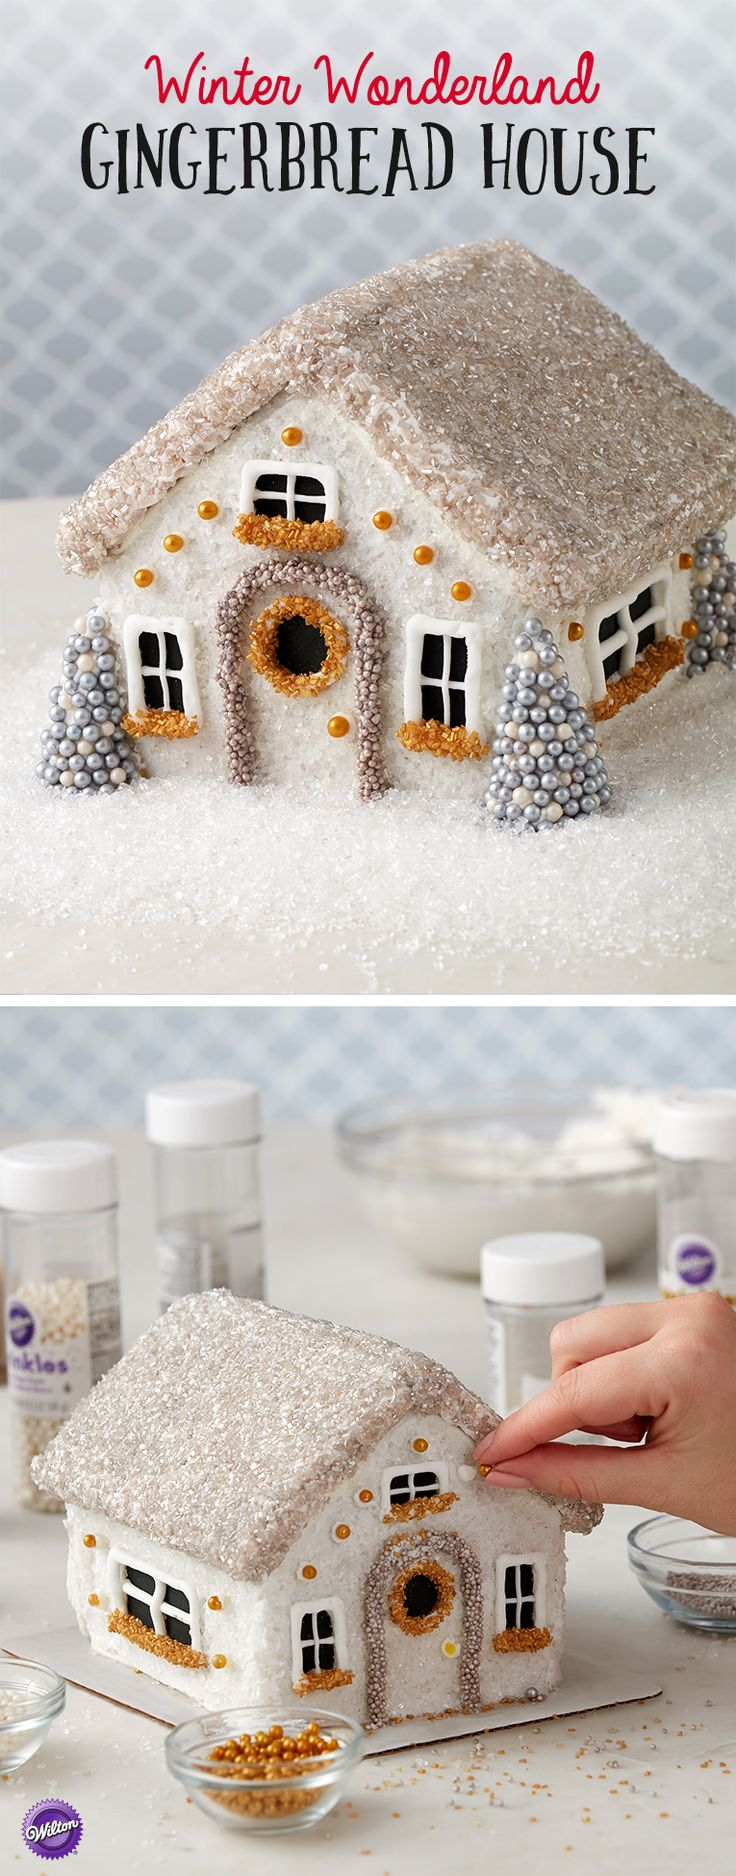 Premade Gingerbread Houses 57 Best Gingerbread Is In The House Images On Pinterest